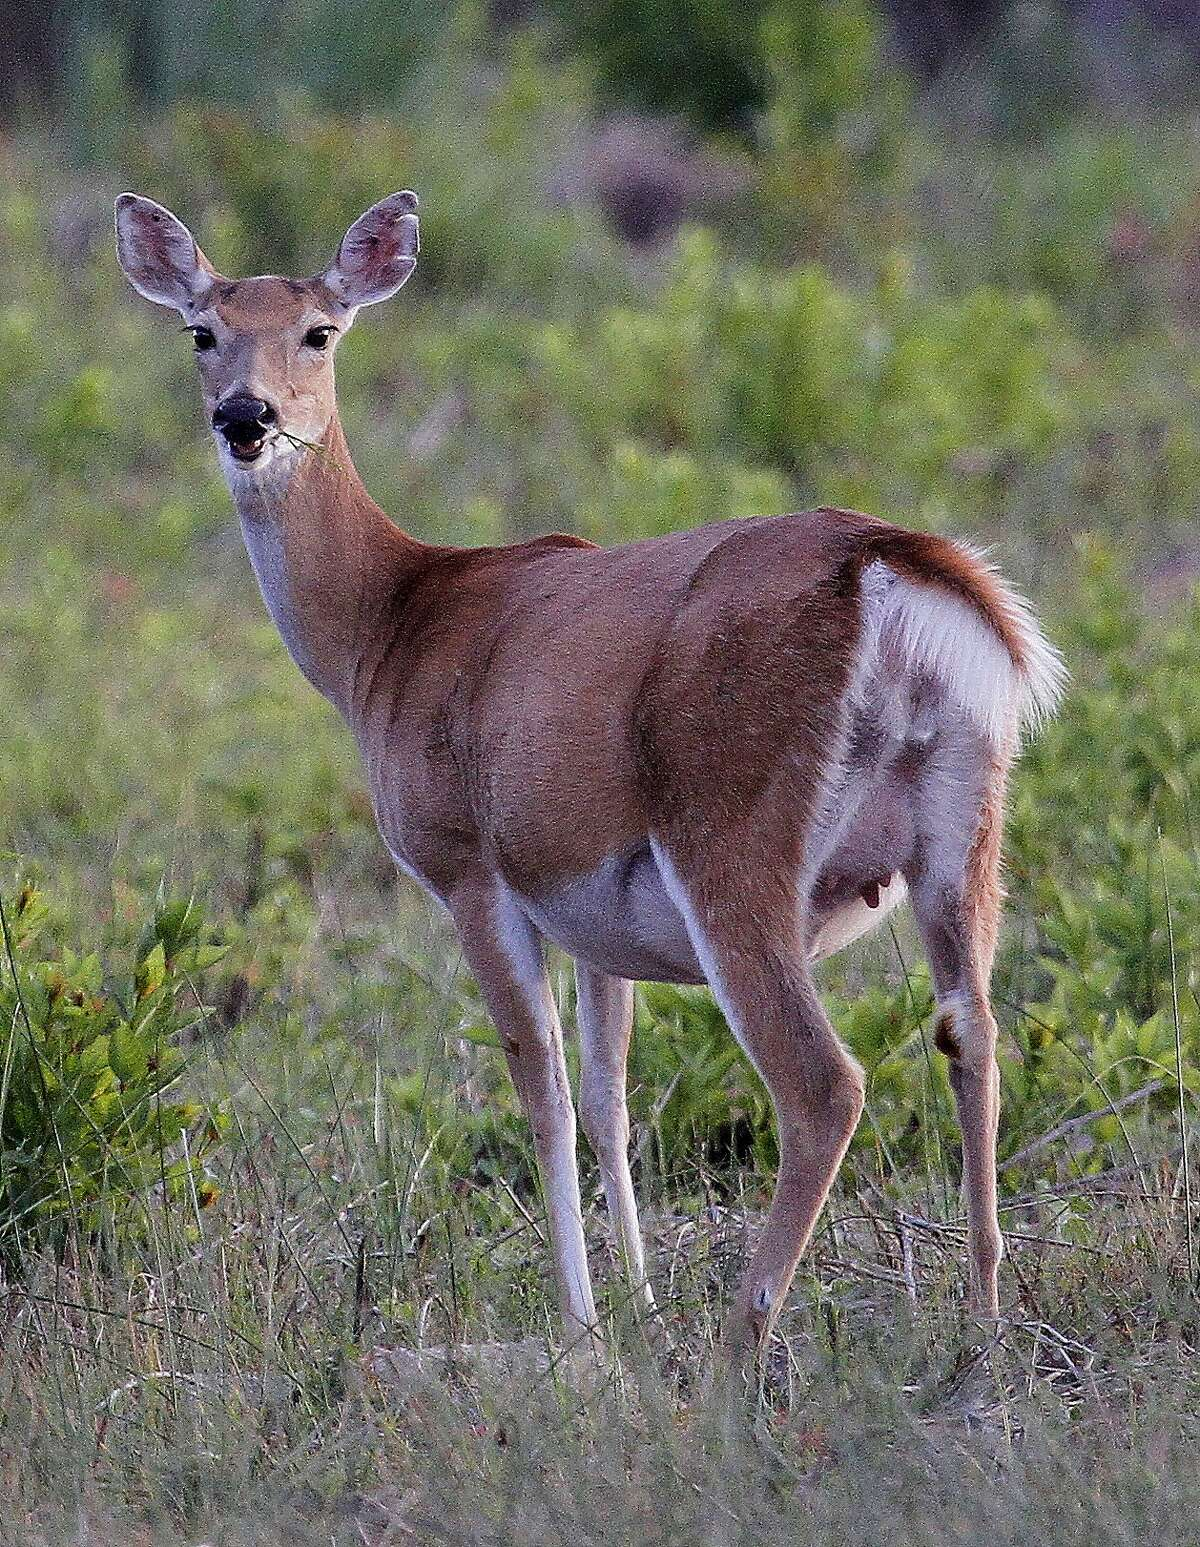 Citing expanding whitetail deer populations and a skewing of buck/doe ratios, Texas wildlife managers are proposing significantly expanding opportunities for hunters in 41 counties of the Blackland Prairie and Post Oak Savannah region to take antlerless deer beginning with the 2019-20 hunting season.